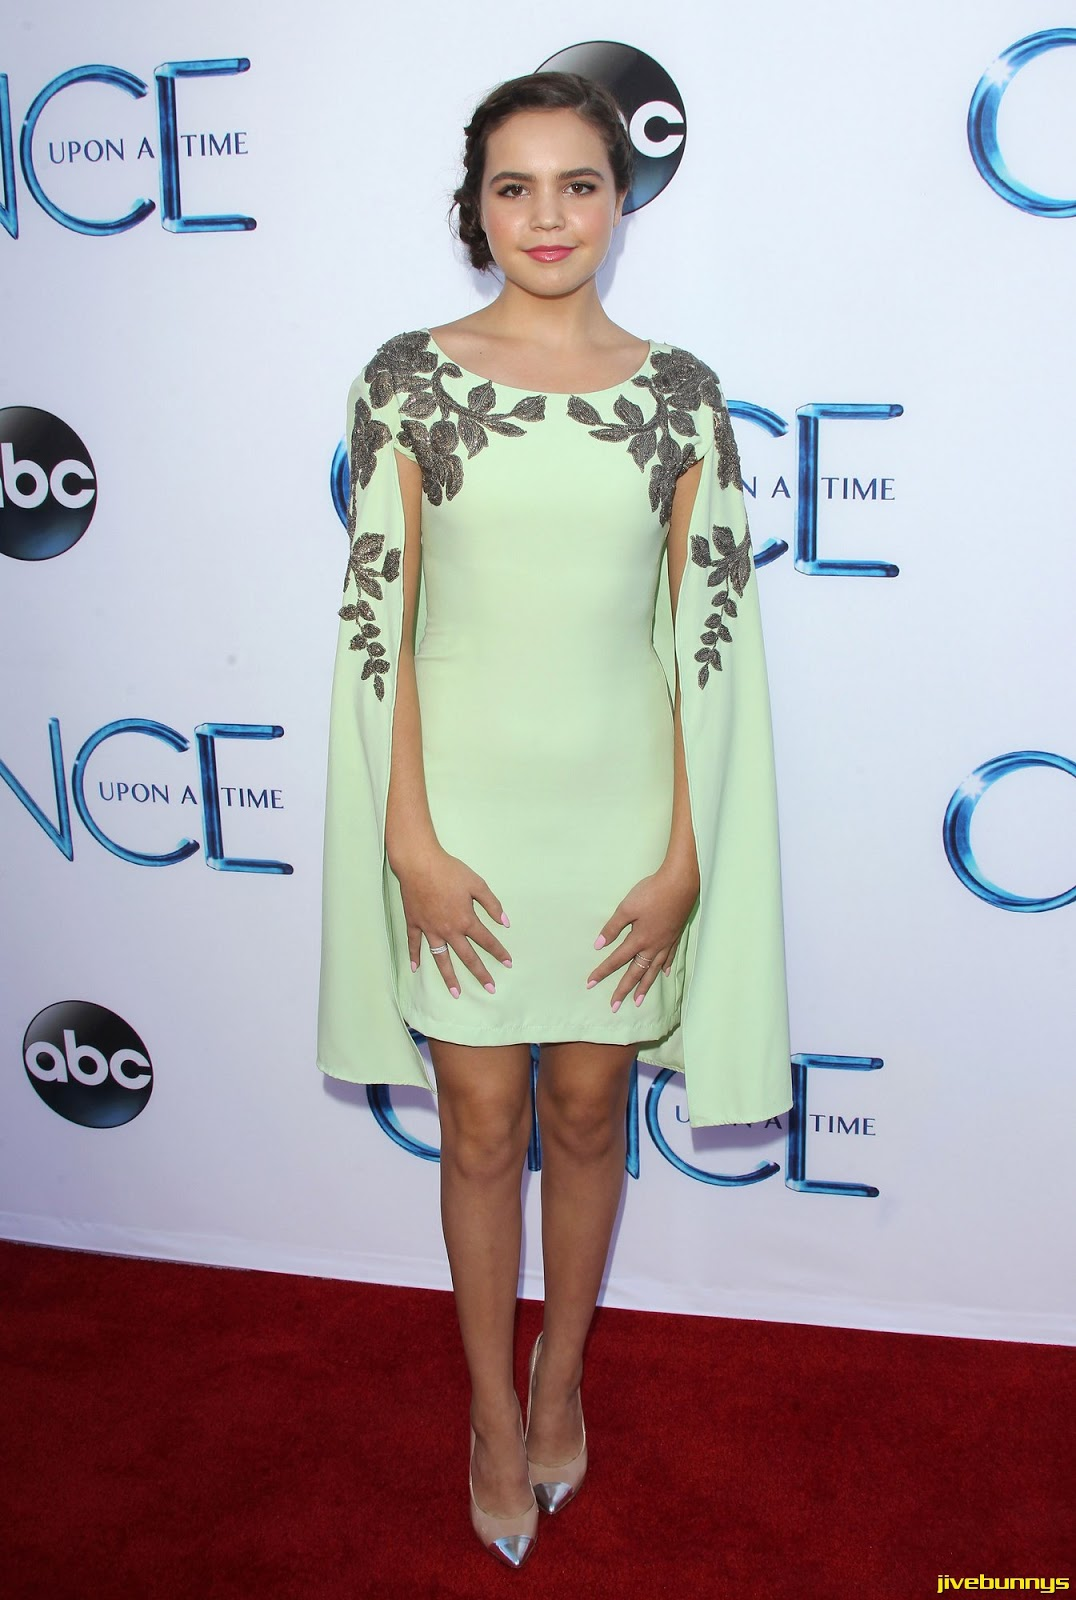 Bailee Madison - 'Once Upon A Time' season 4 screening in Hollywood 09/21/14